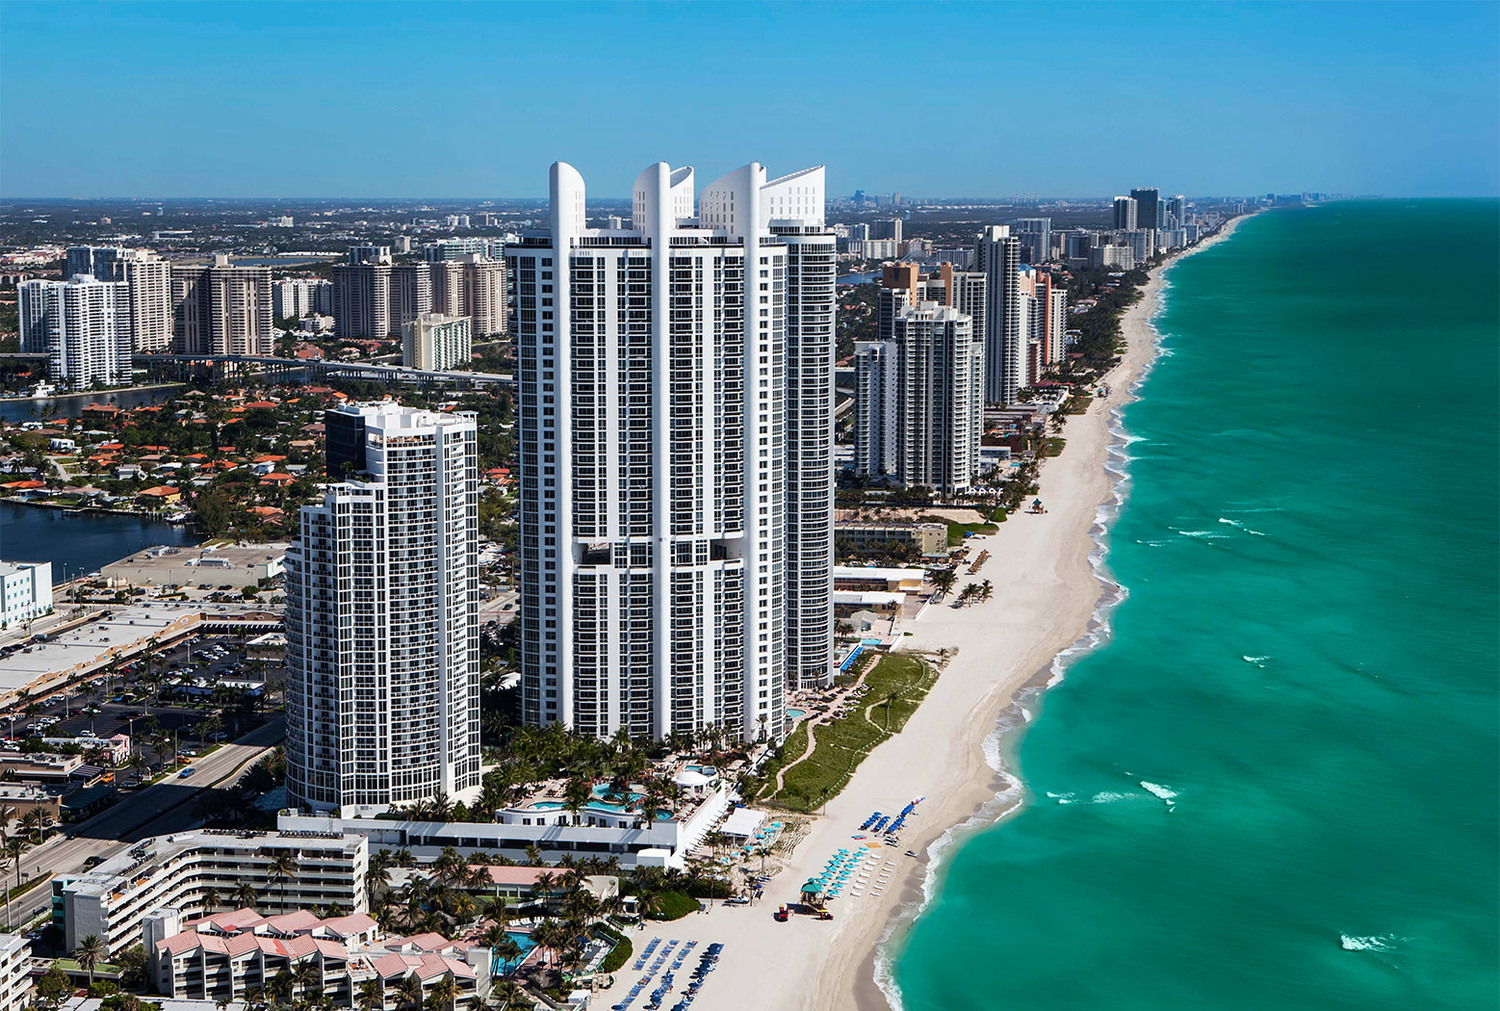 Trump International Beach Resort 18001 Collins Avenue Sunny Isles Fl 33160